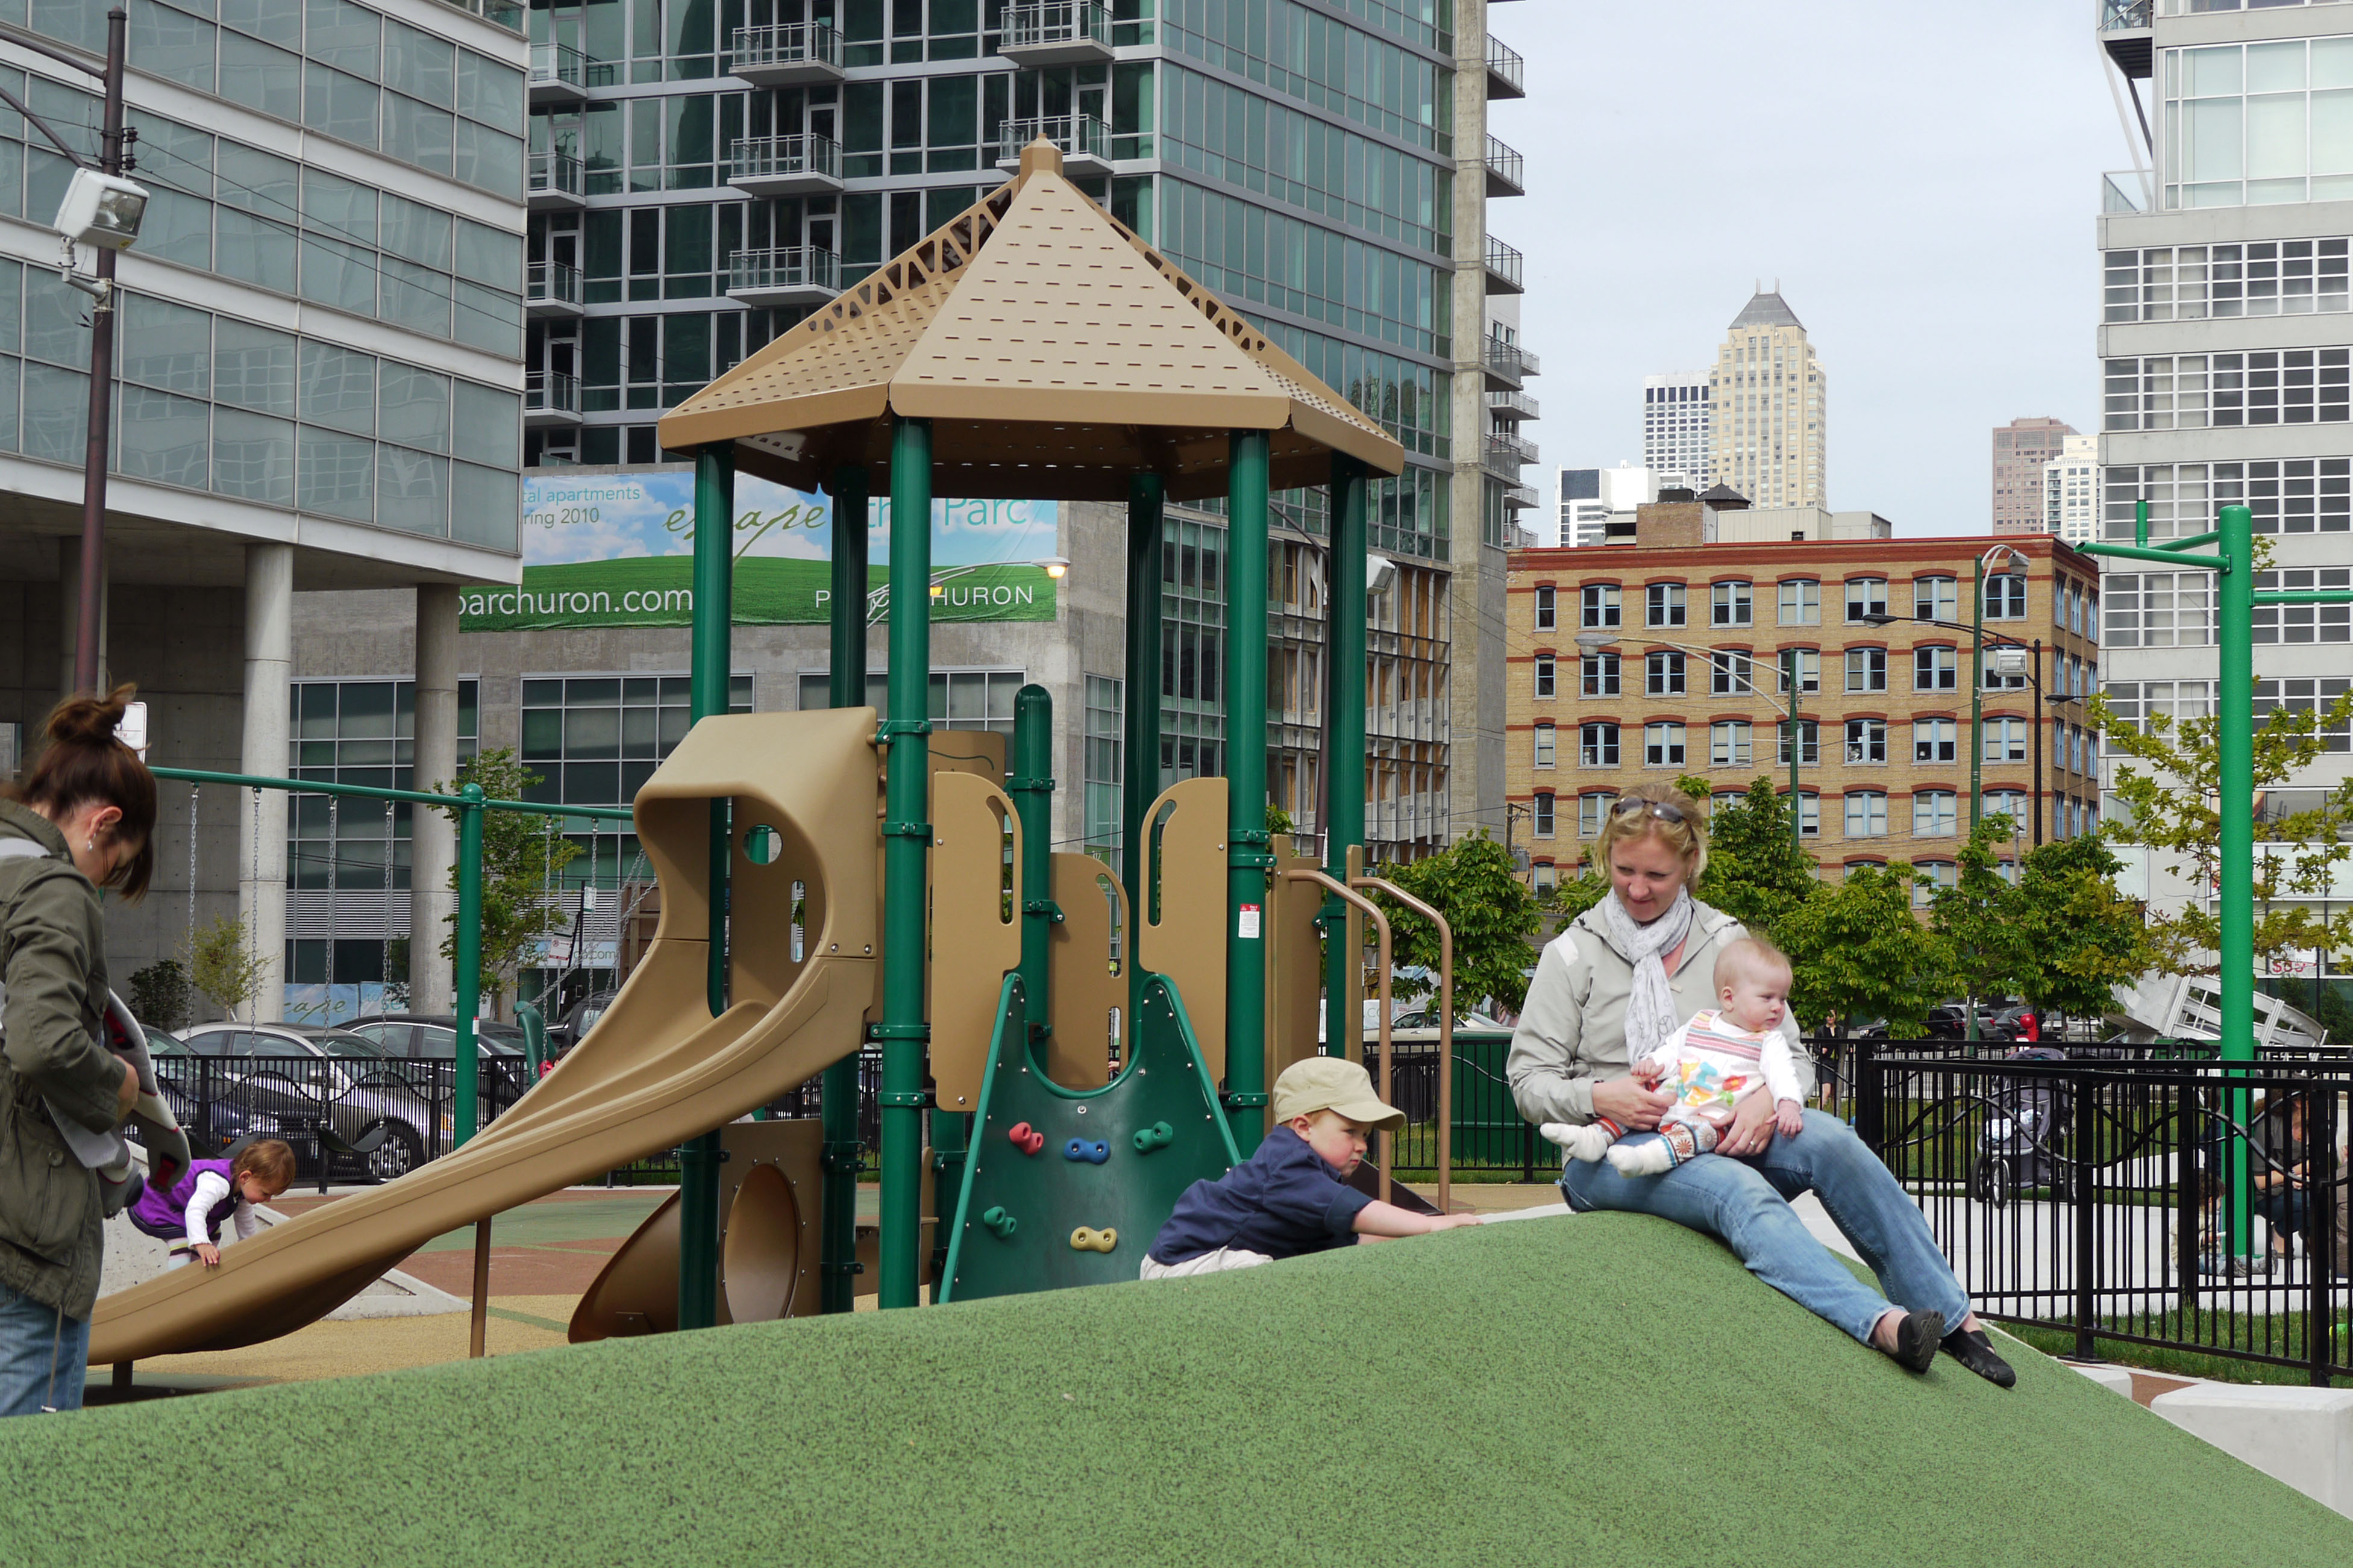 Erie Park's playground: River North's newest hot spot